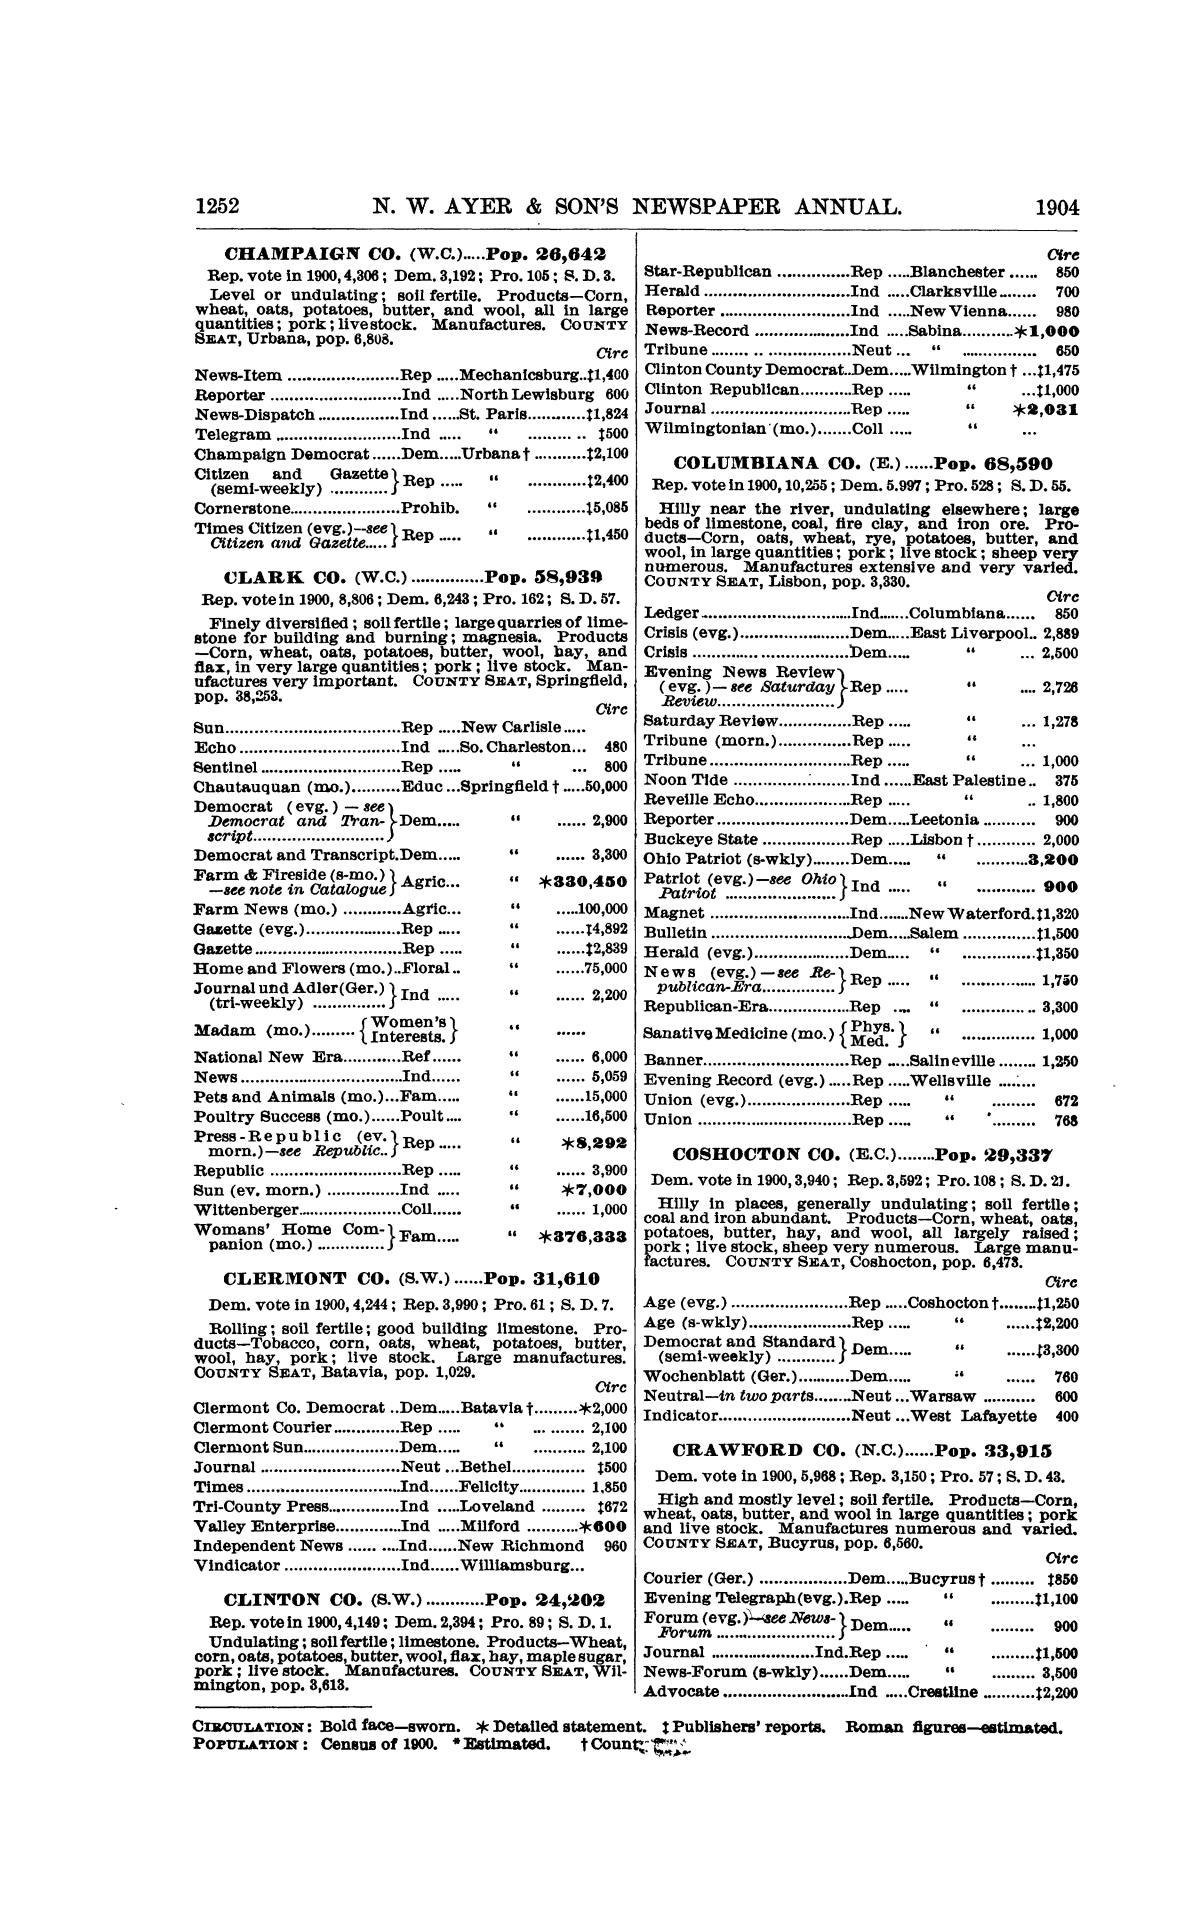 N  W  Ayer & Son's American Newspaper Annual: containing a